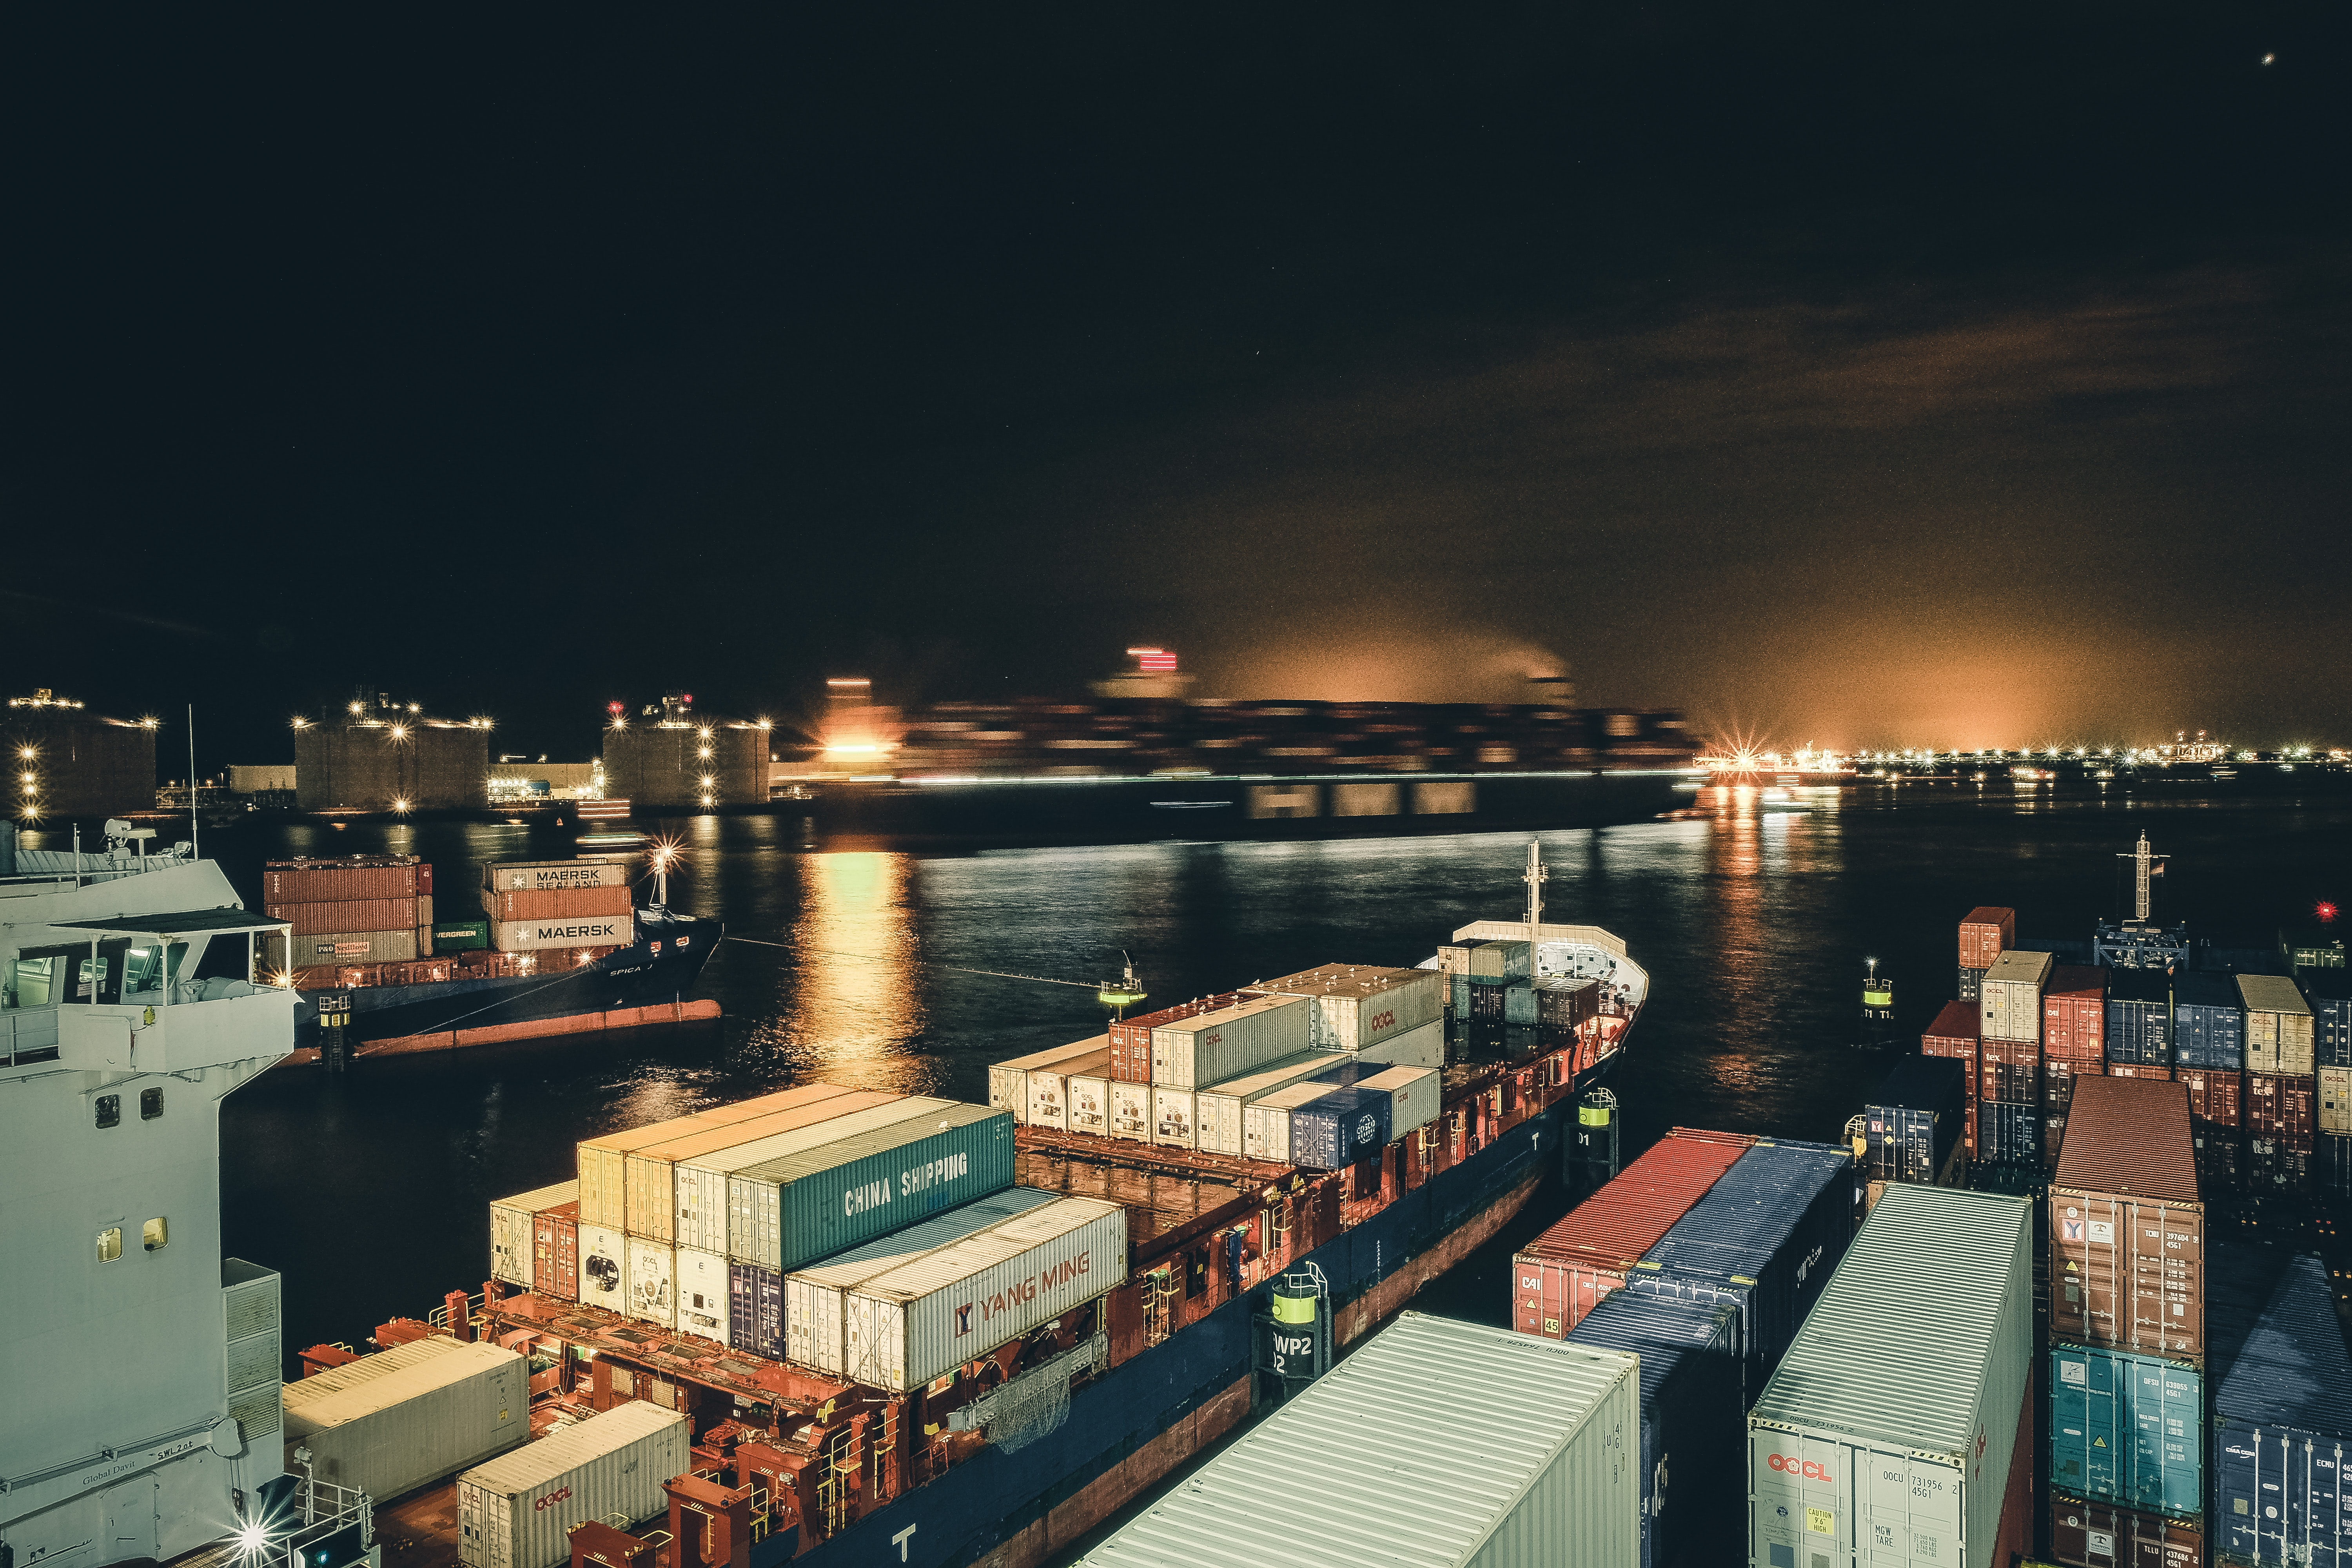 UK supply chain disruption as Maersk re-direct large vessels away from the UK